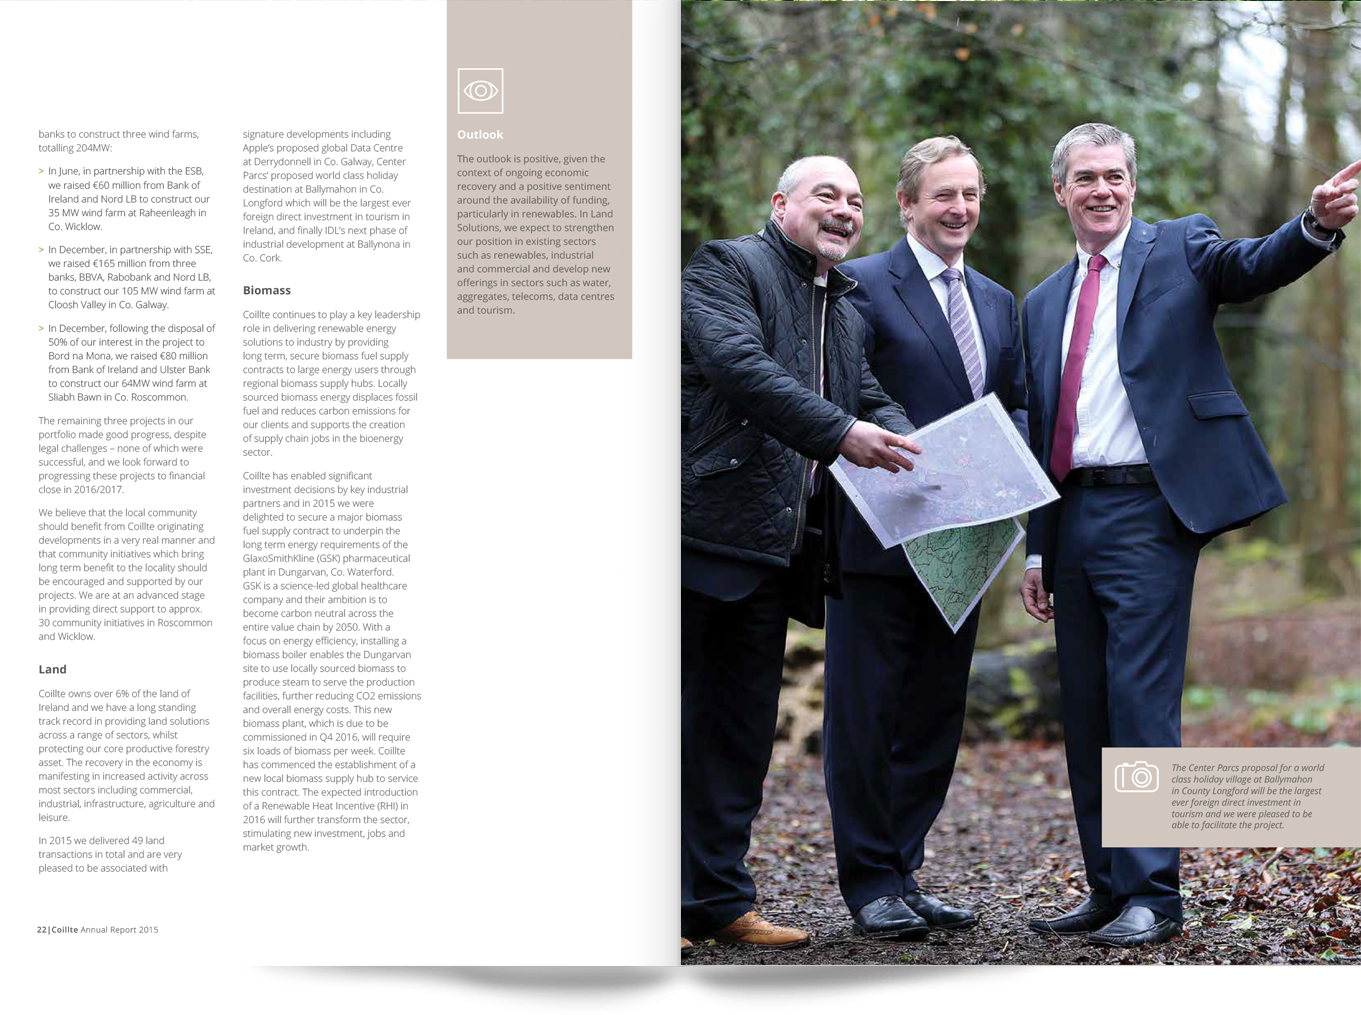 e_coillte_annual_report_spread_enda_kenny_review